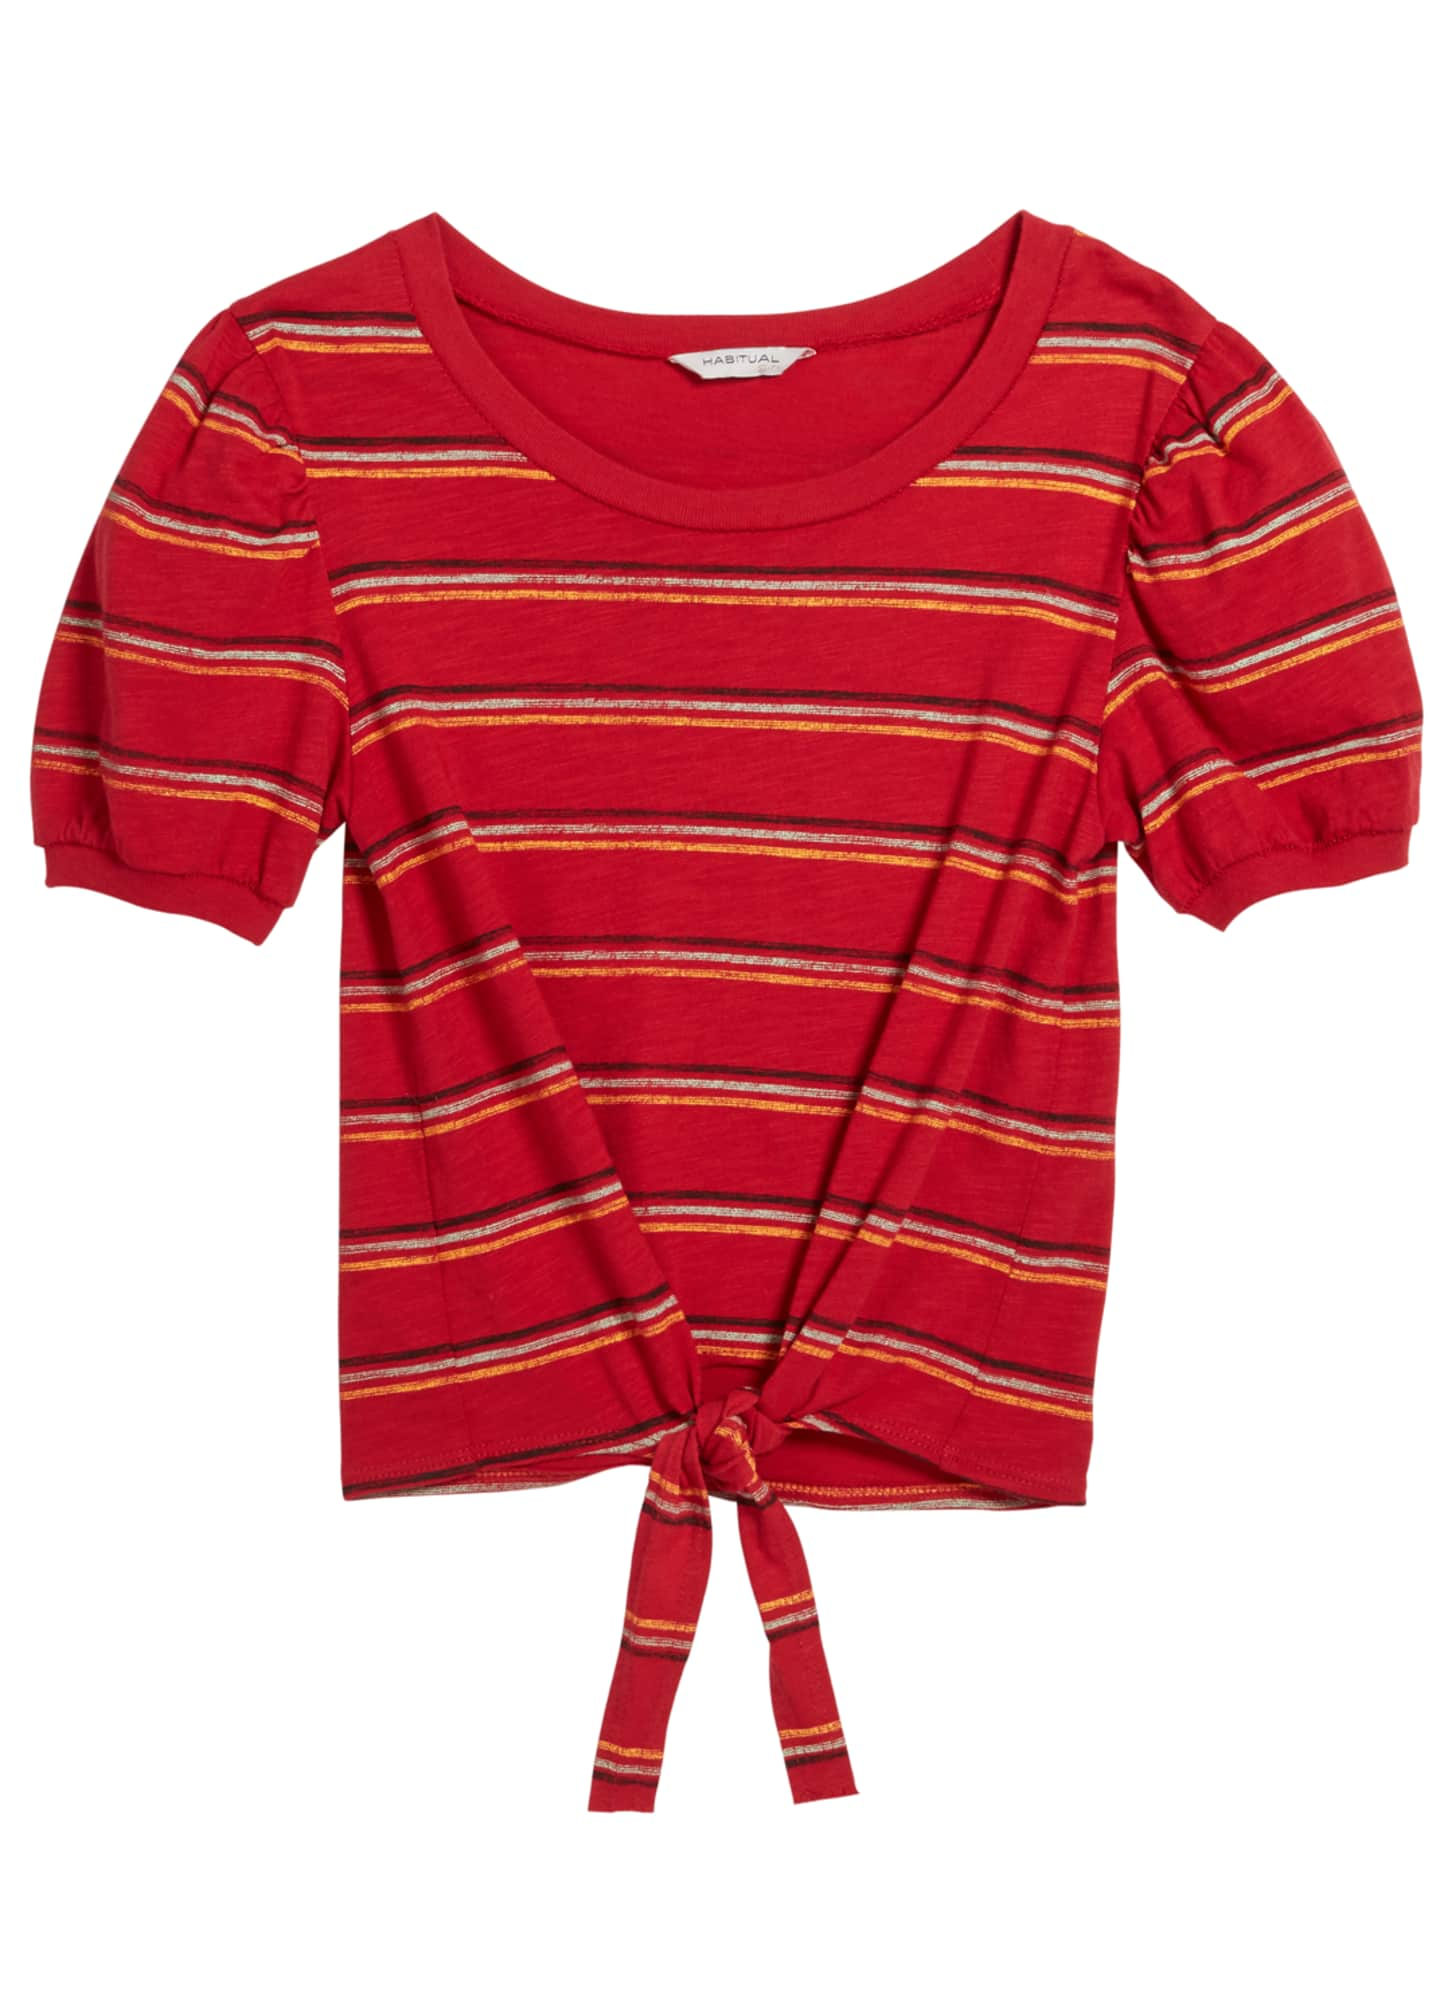 Habitual Brynlee Striped Puffy Sleeves Shirt, Size 7-14